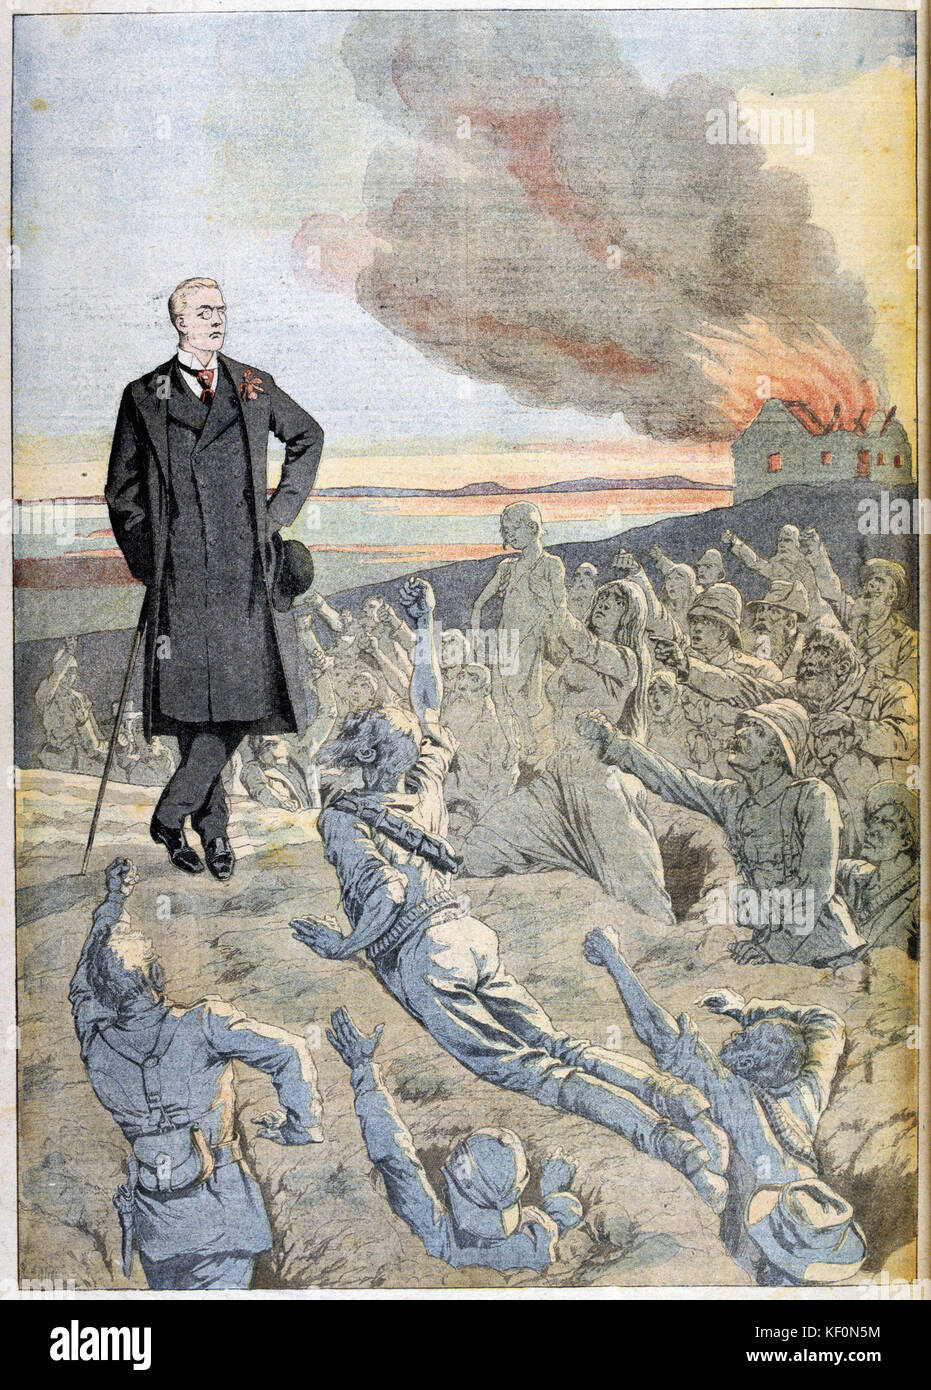 Joseph Chamberlain  British Liberal statesman. being confronted by the ghosts of the British troops killed during - Stock Image